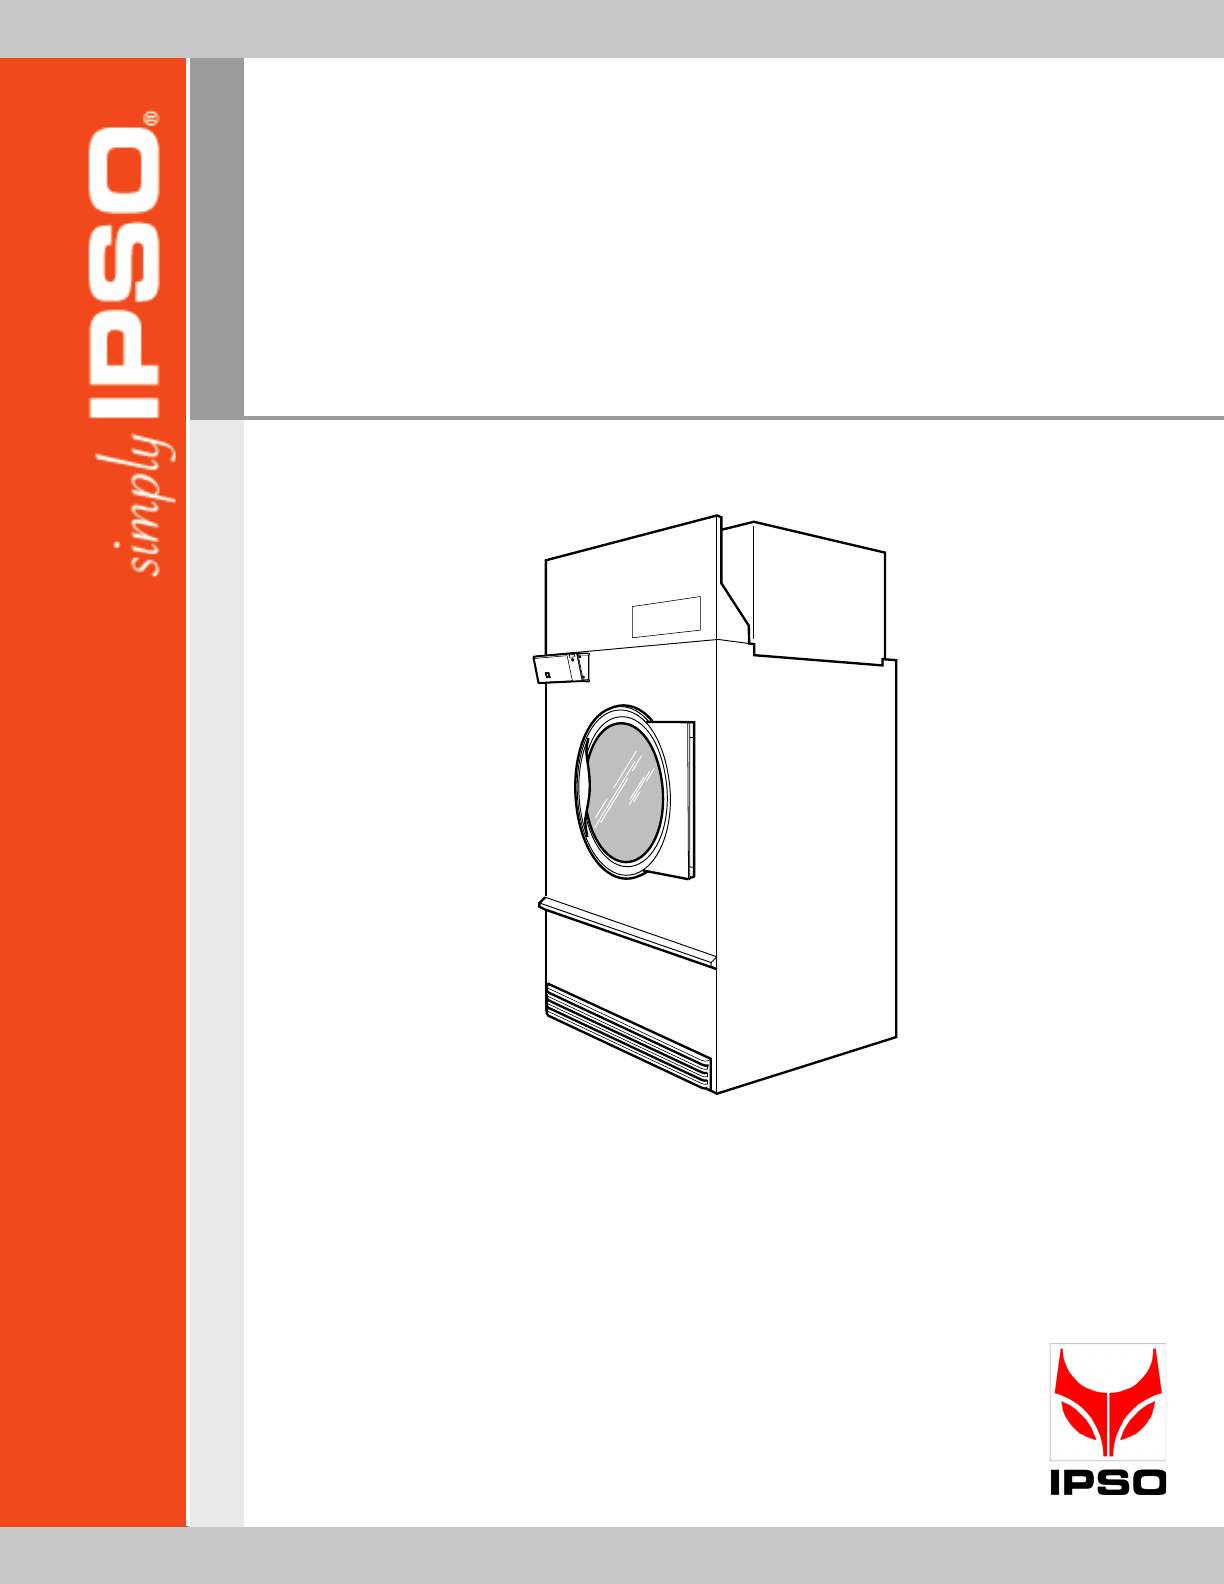 ipso clothes dryer tmb1268c user guide manualsonline com rh laundry manualsonline com Operators Manual ipso cw10 user manual